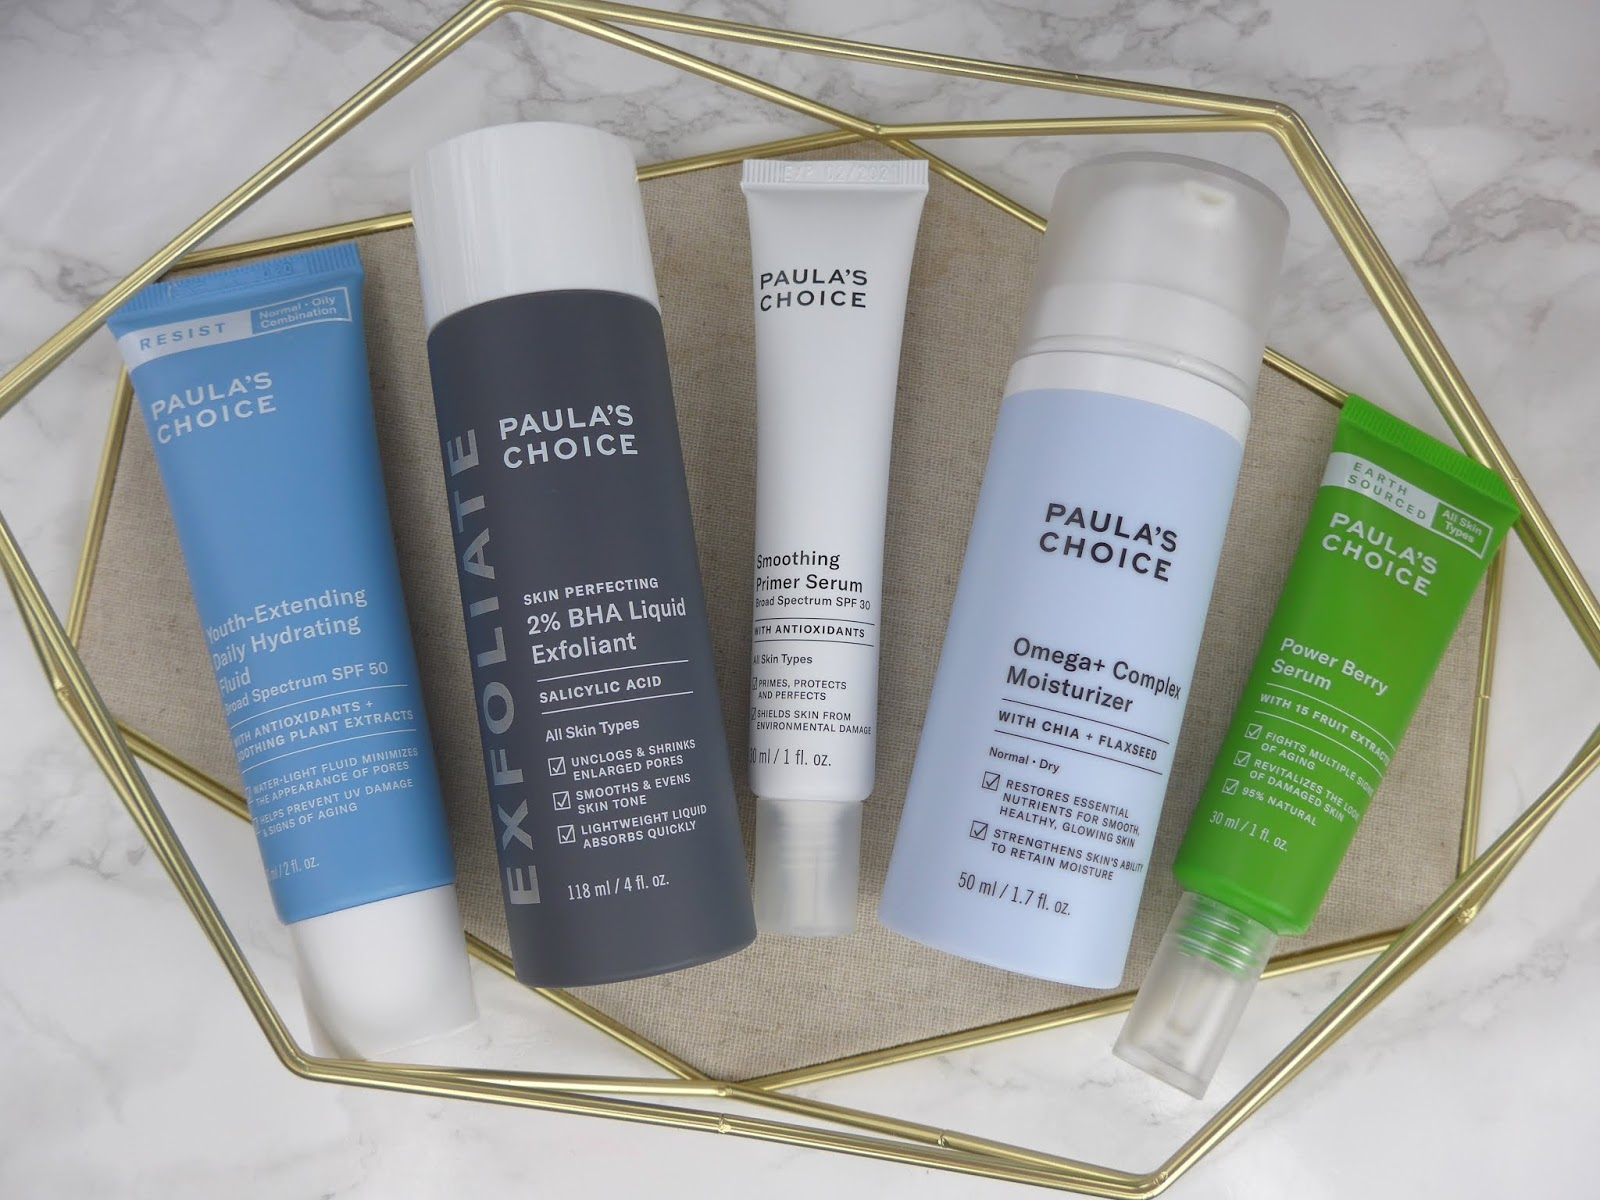 Paula's Choice Recap - Fresh, New Products!